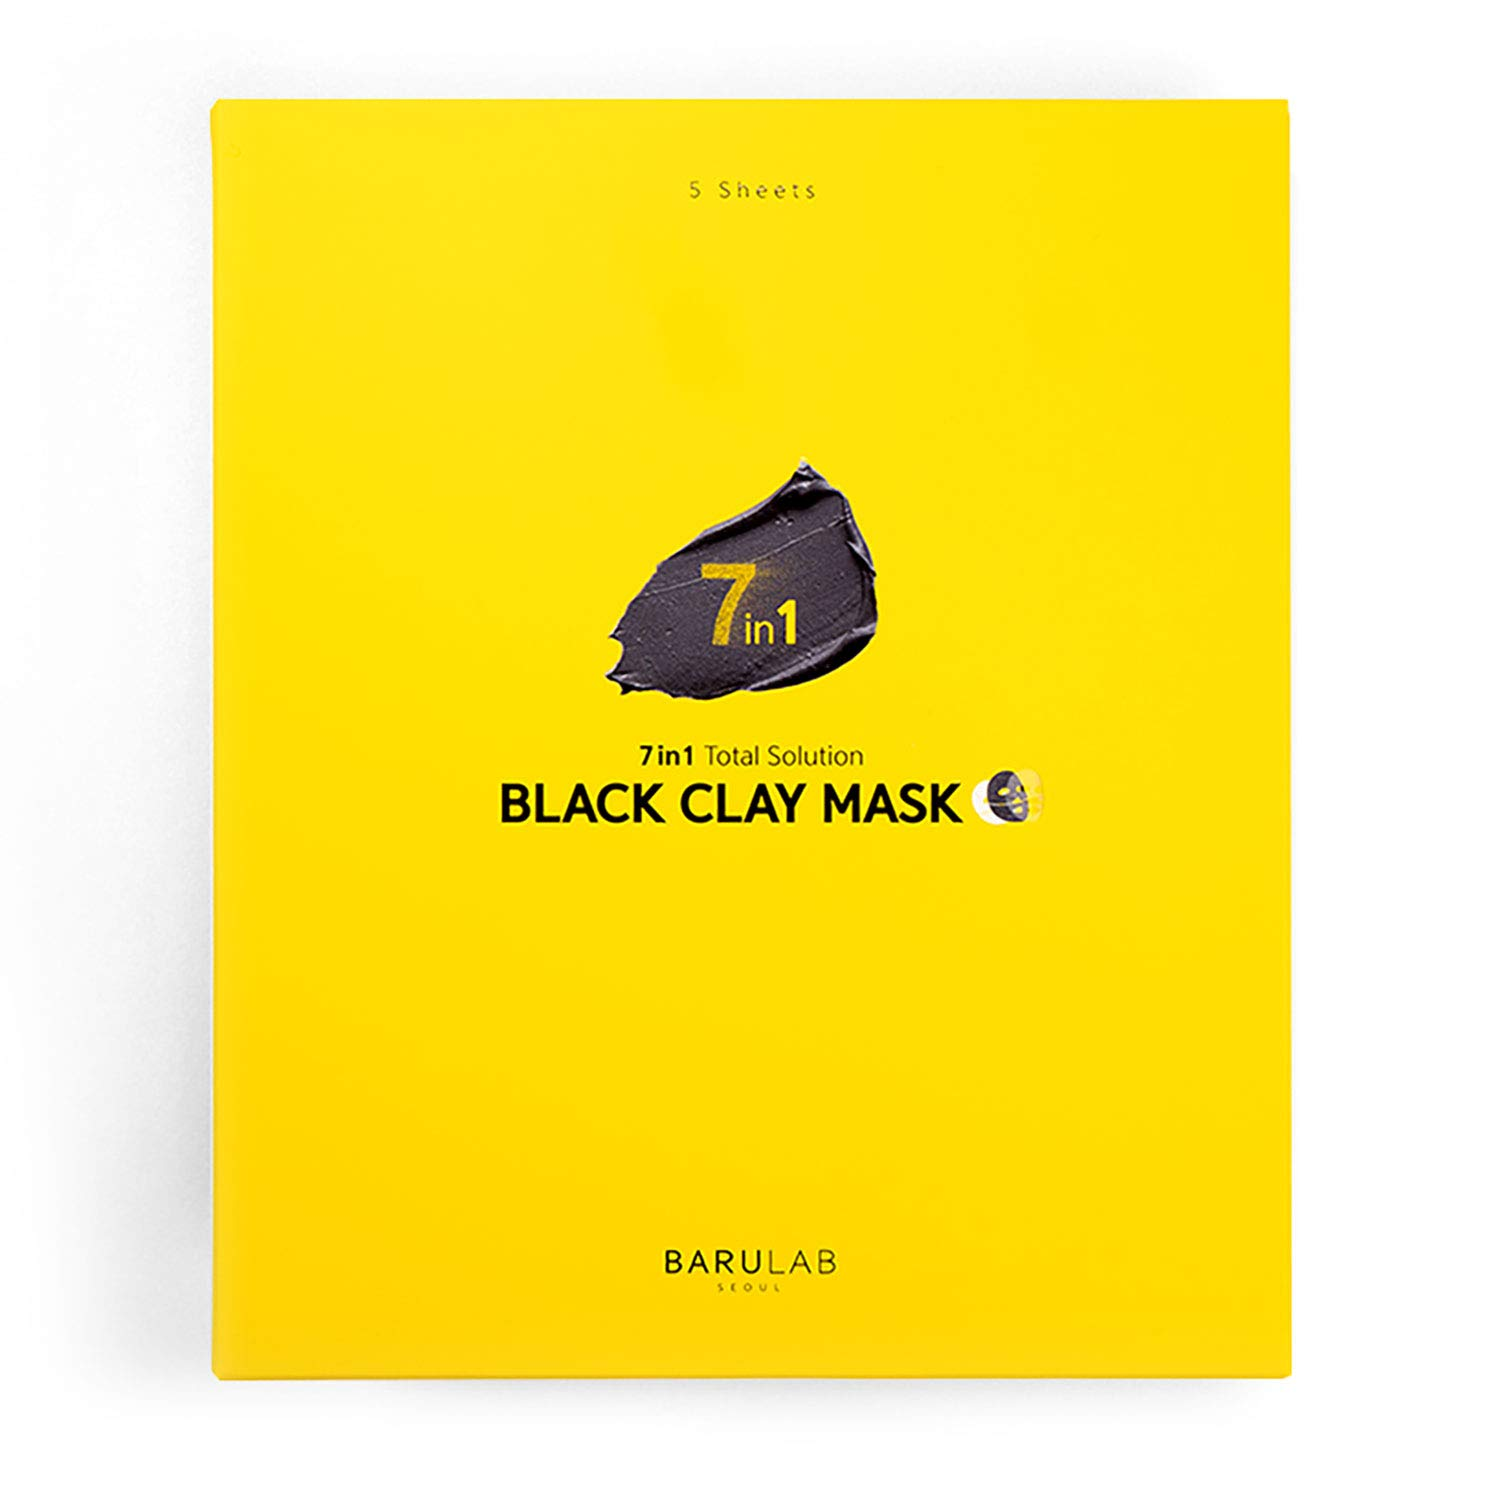 Barulab, Korean Facial Mask Black Clay Mask Sheets X 5EA | 7 in 1 Total Solution | Deep Cleansing | Moisturizing | Exfoliating | Sebum Control